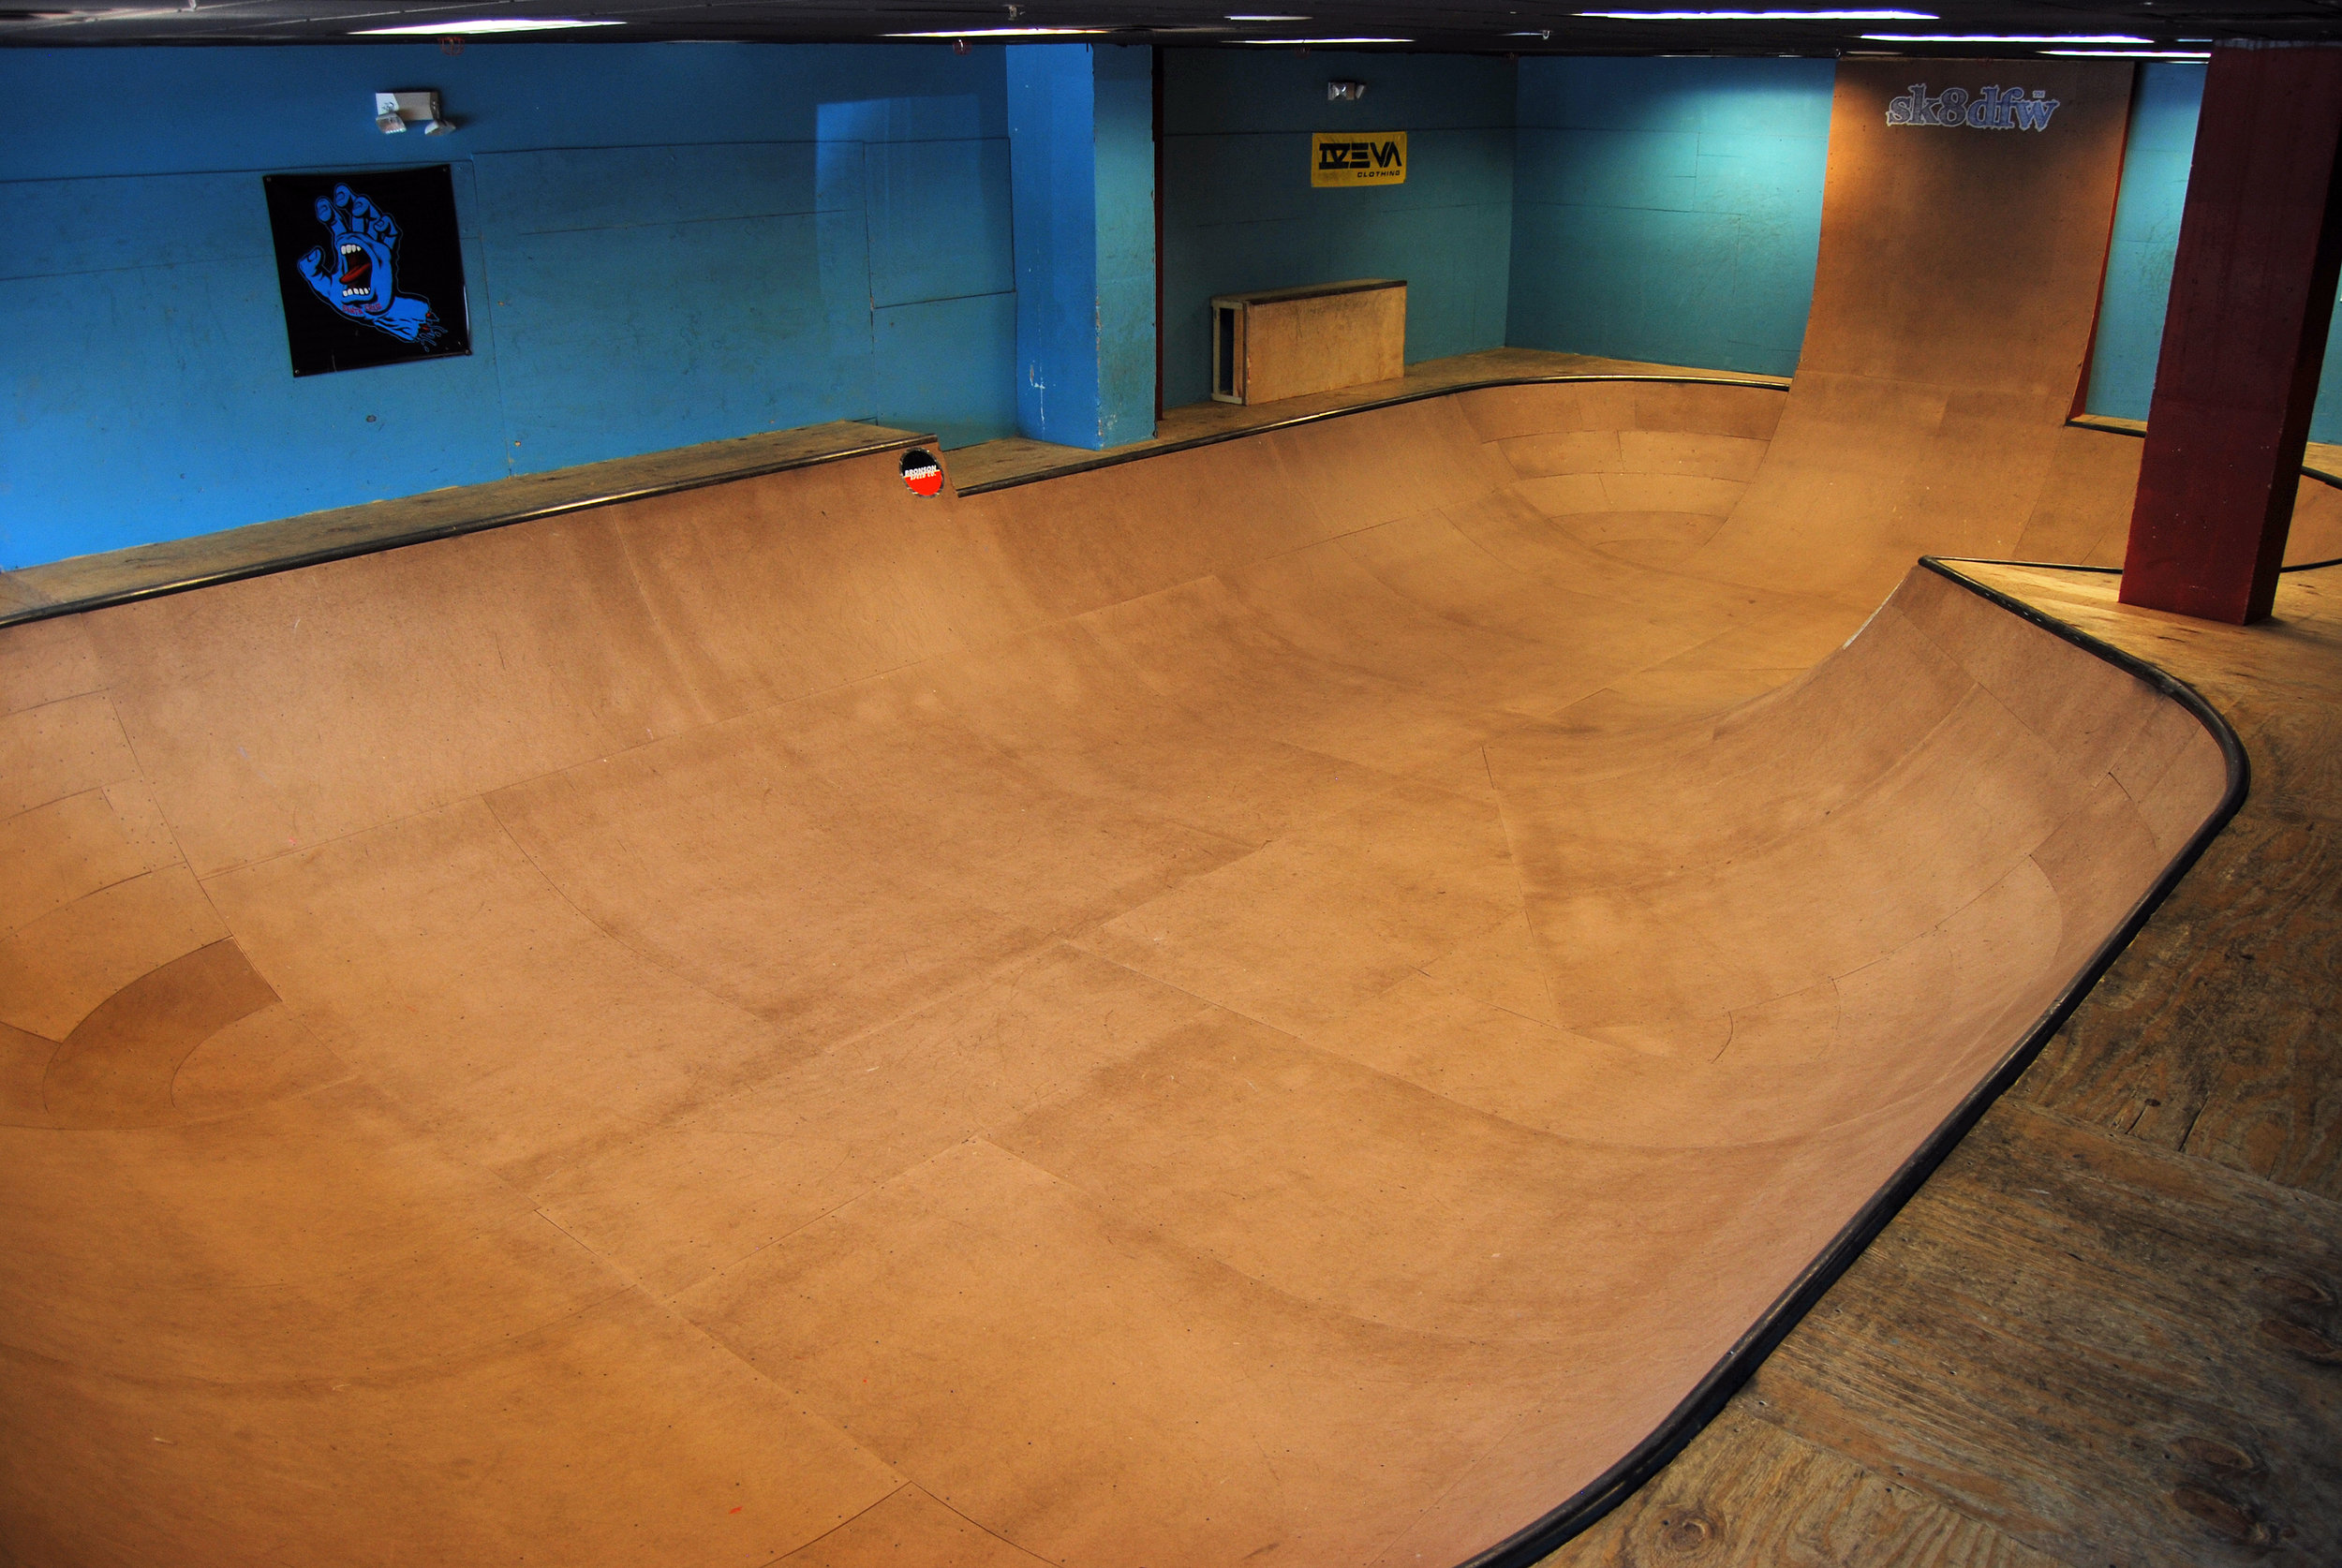 Point Skate Shop's Indoor Bowl